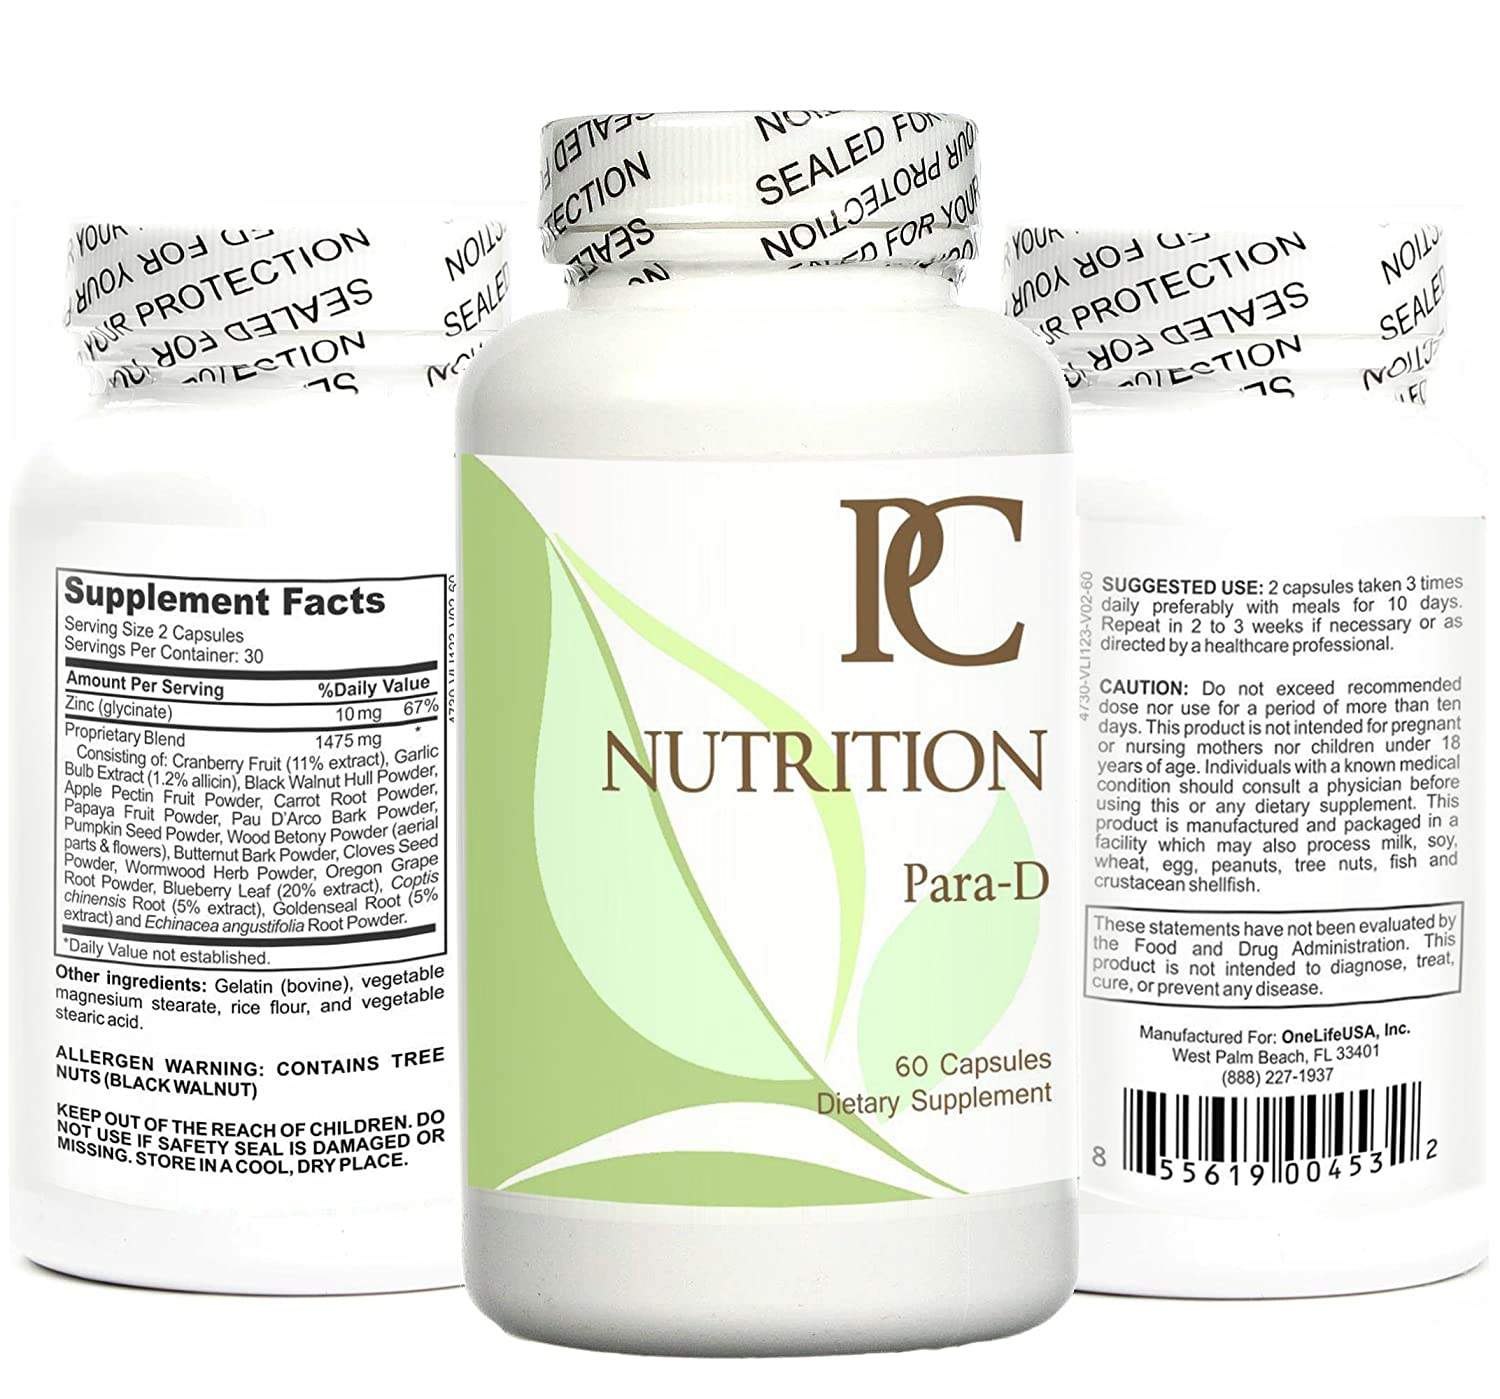 para-D: Easy 10 Day Program  with Wormwood, Black Walnut, Cloves + More in  Non-GMO Formula